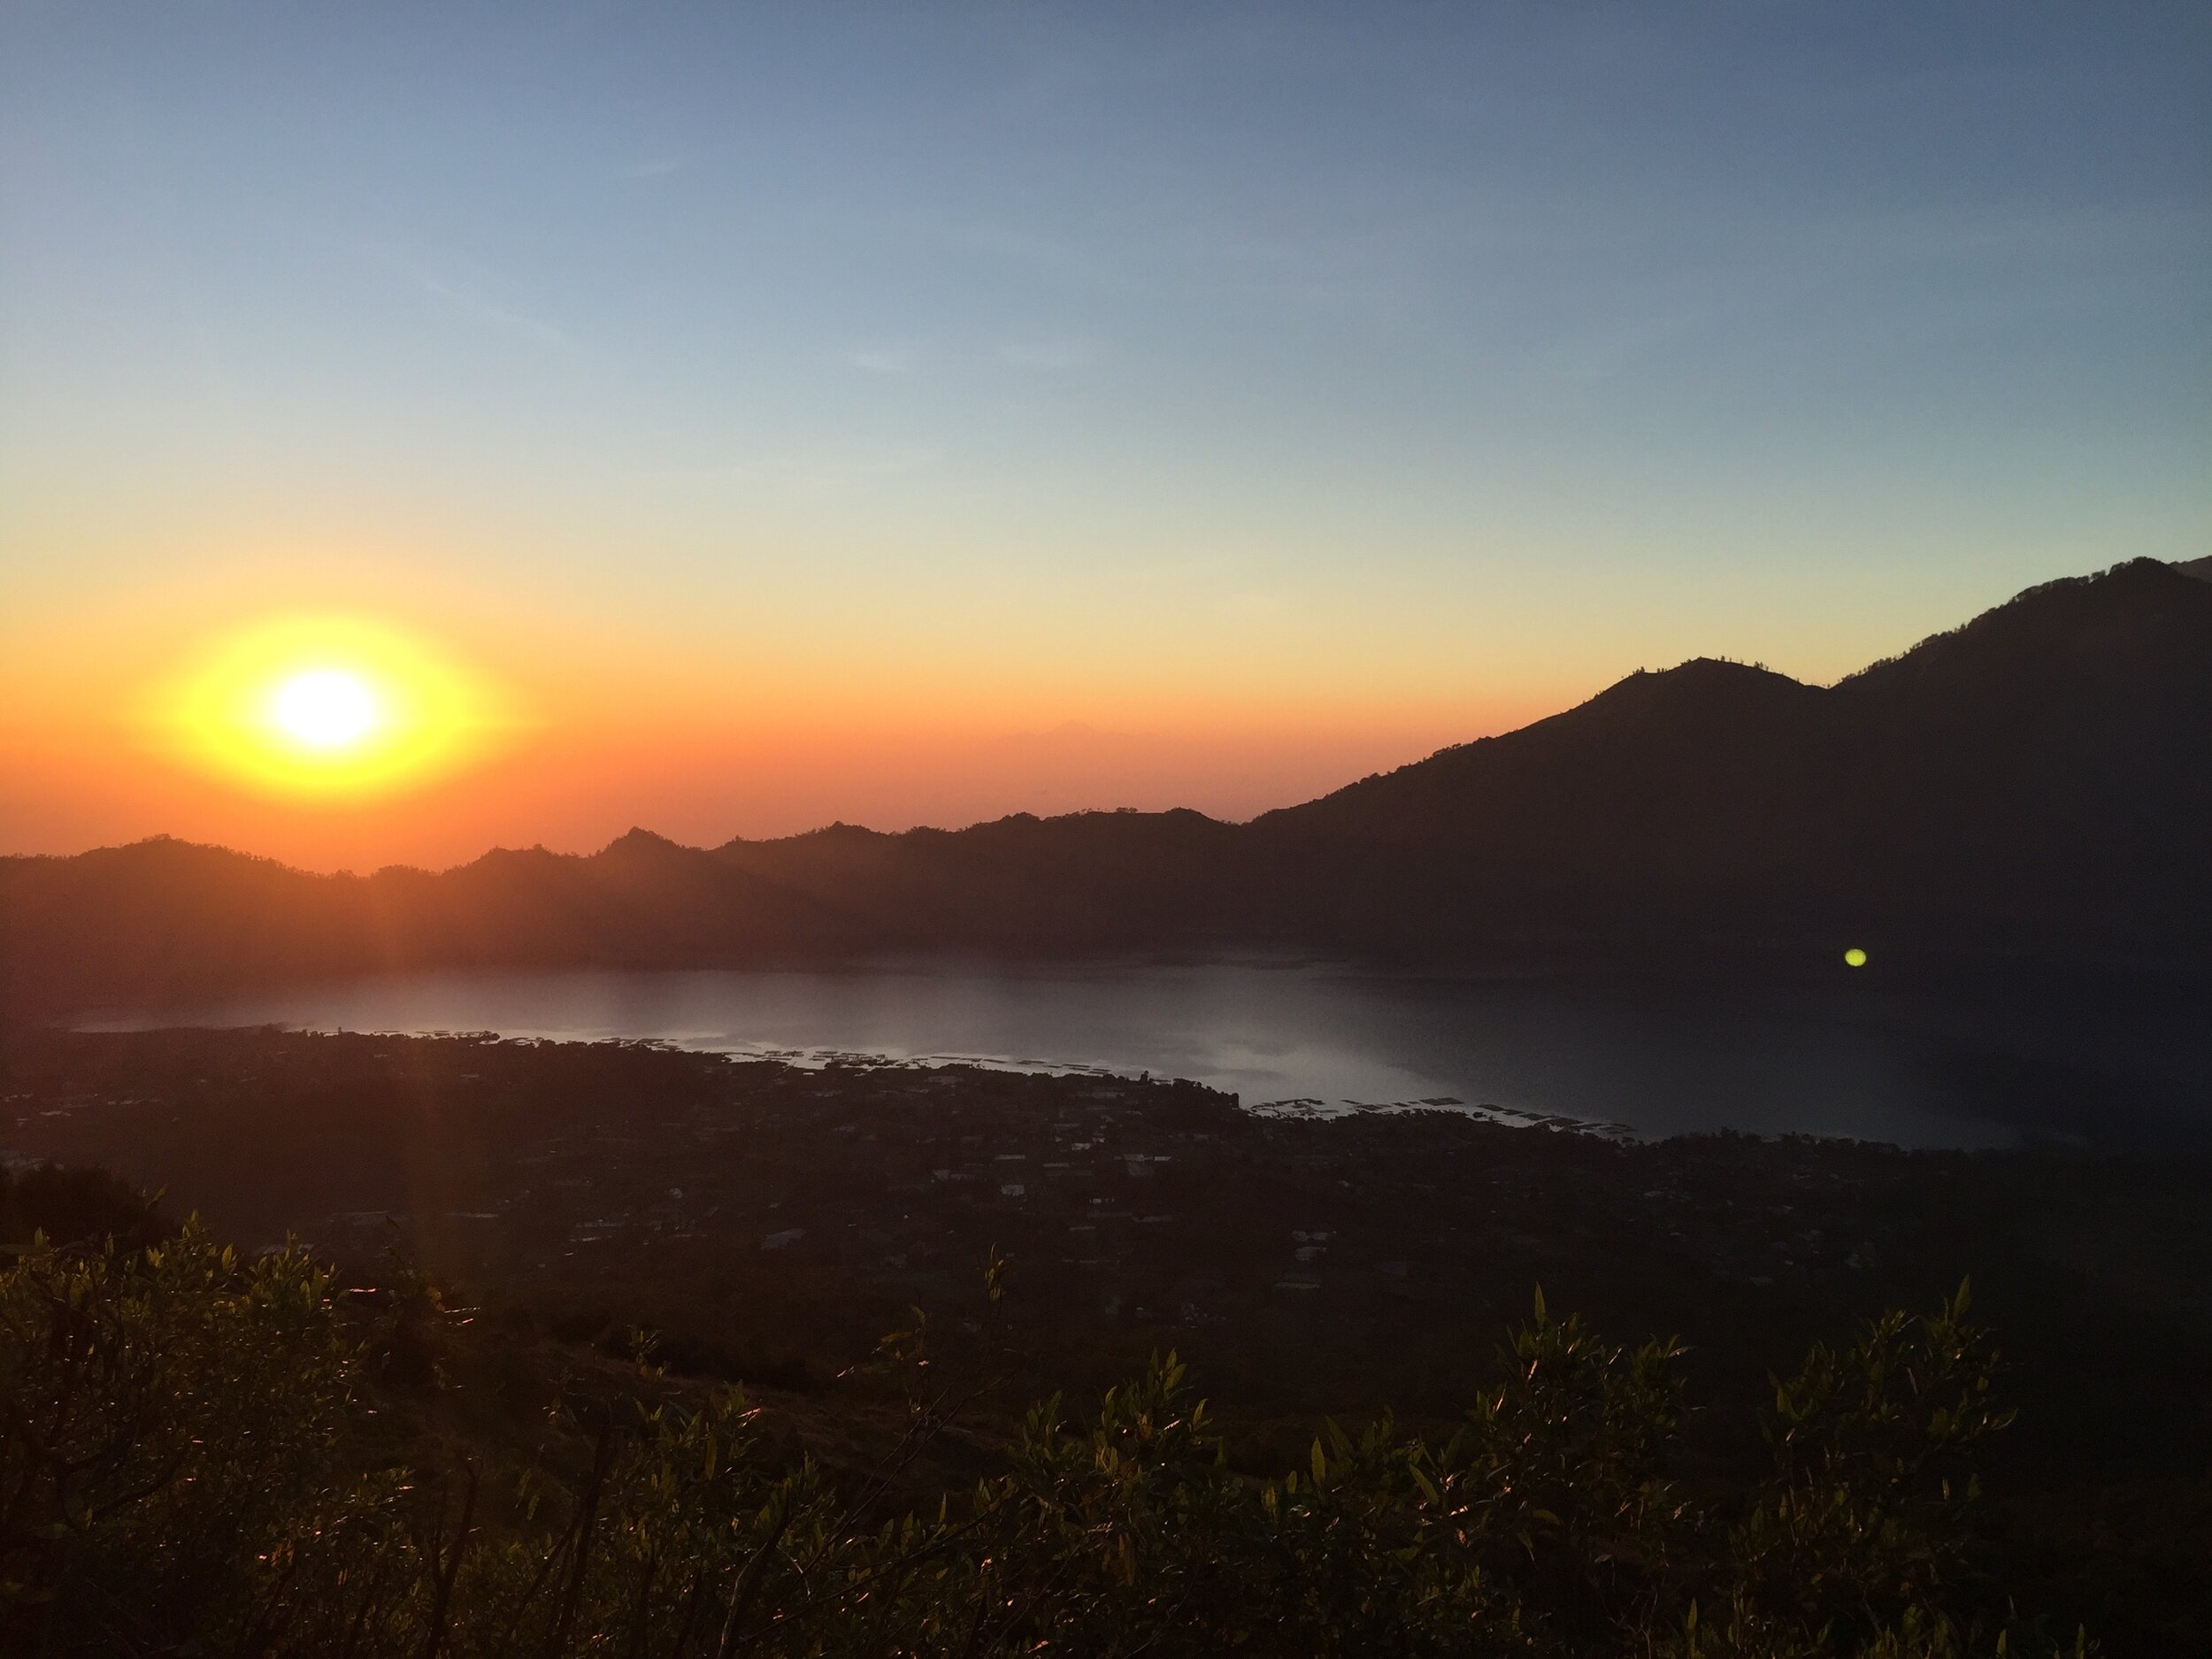 Watching the sun rise over the valley from Mount Batur in Bali